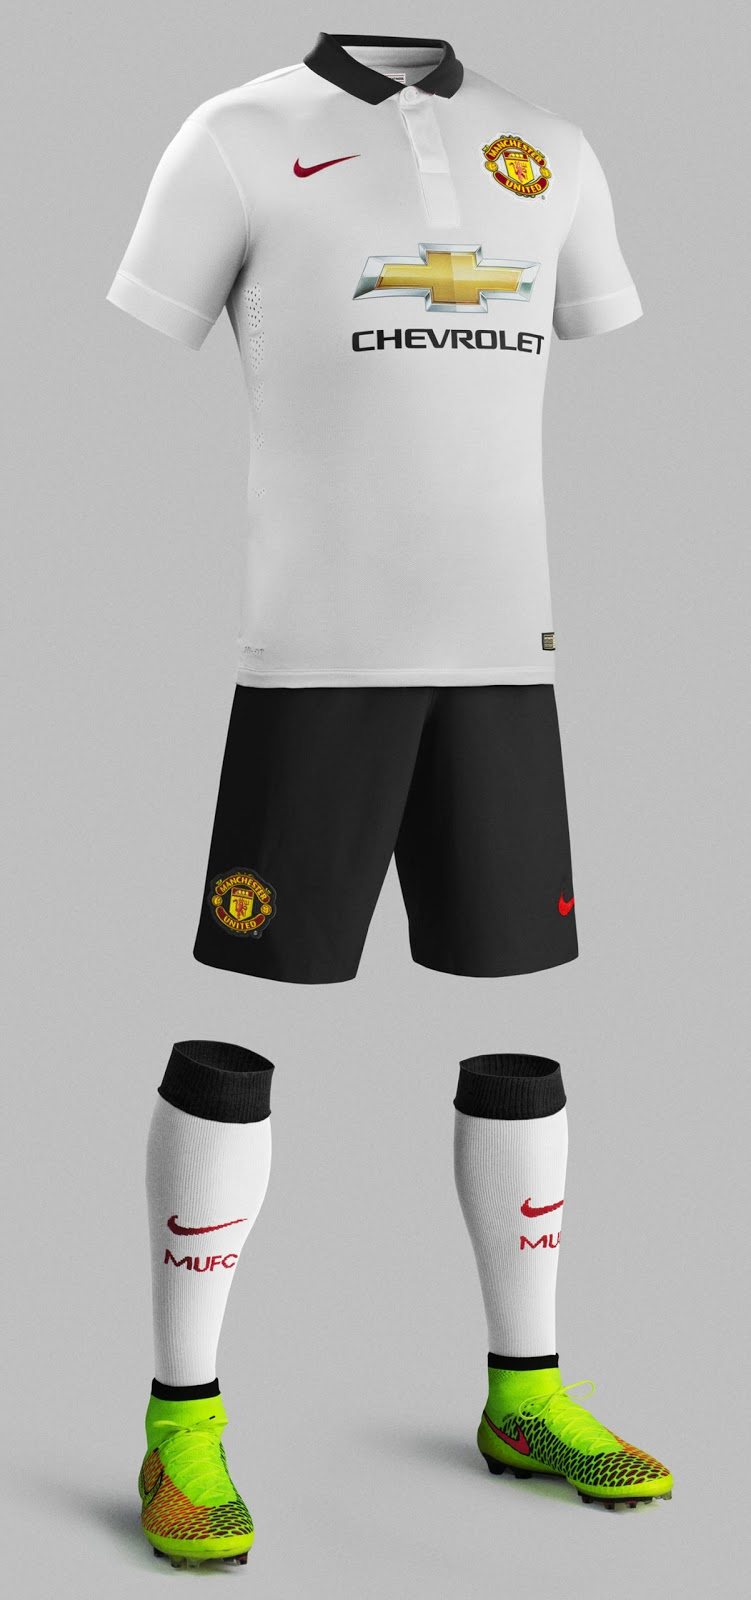 2ef772890c4 MANCHESTER UNITED 14-15 AWAY KIT. This is the new ...